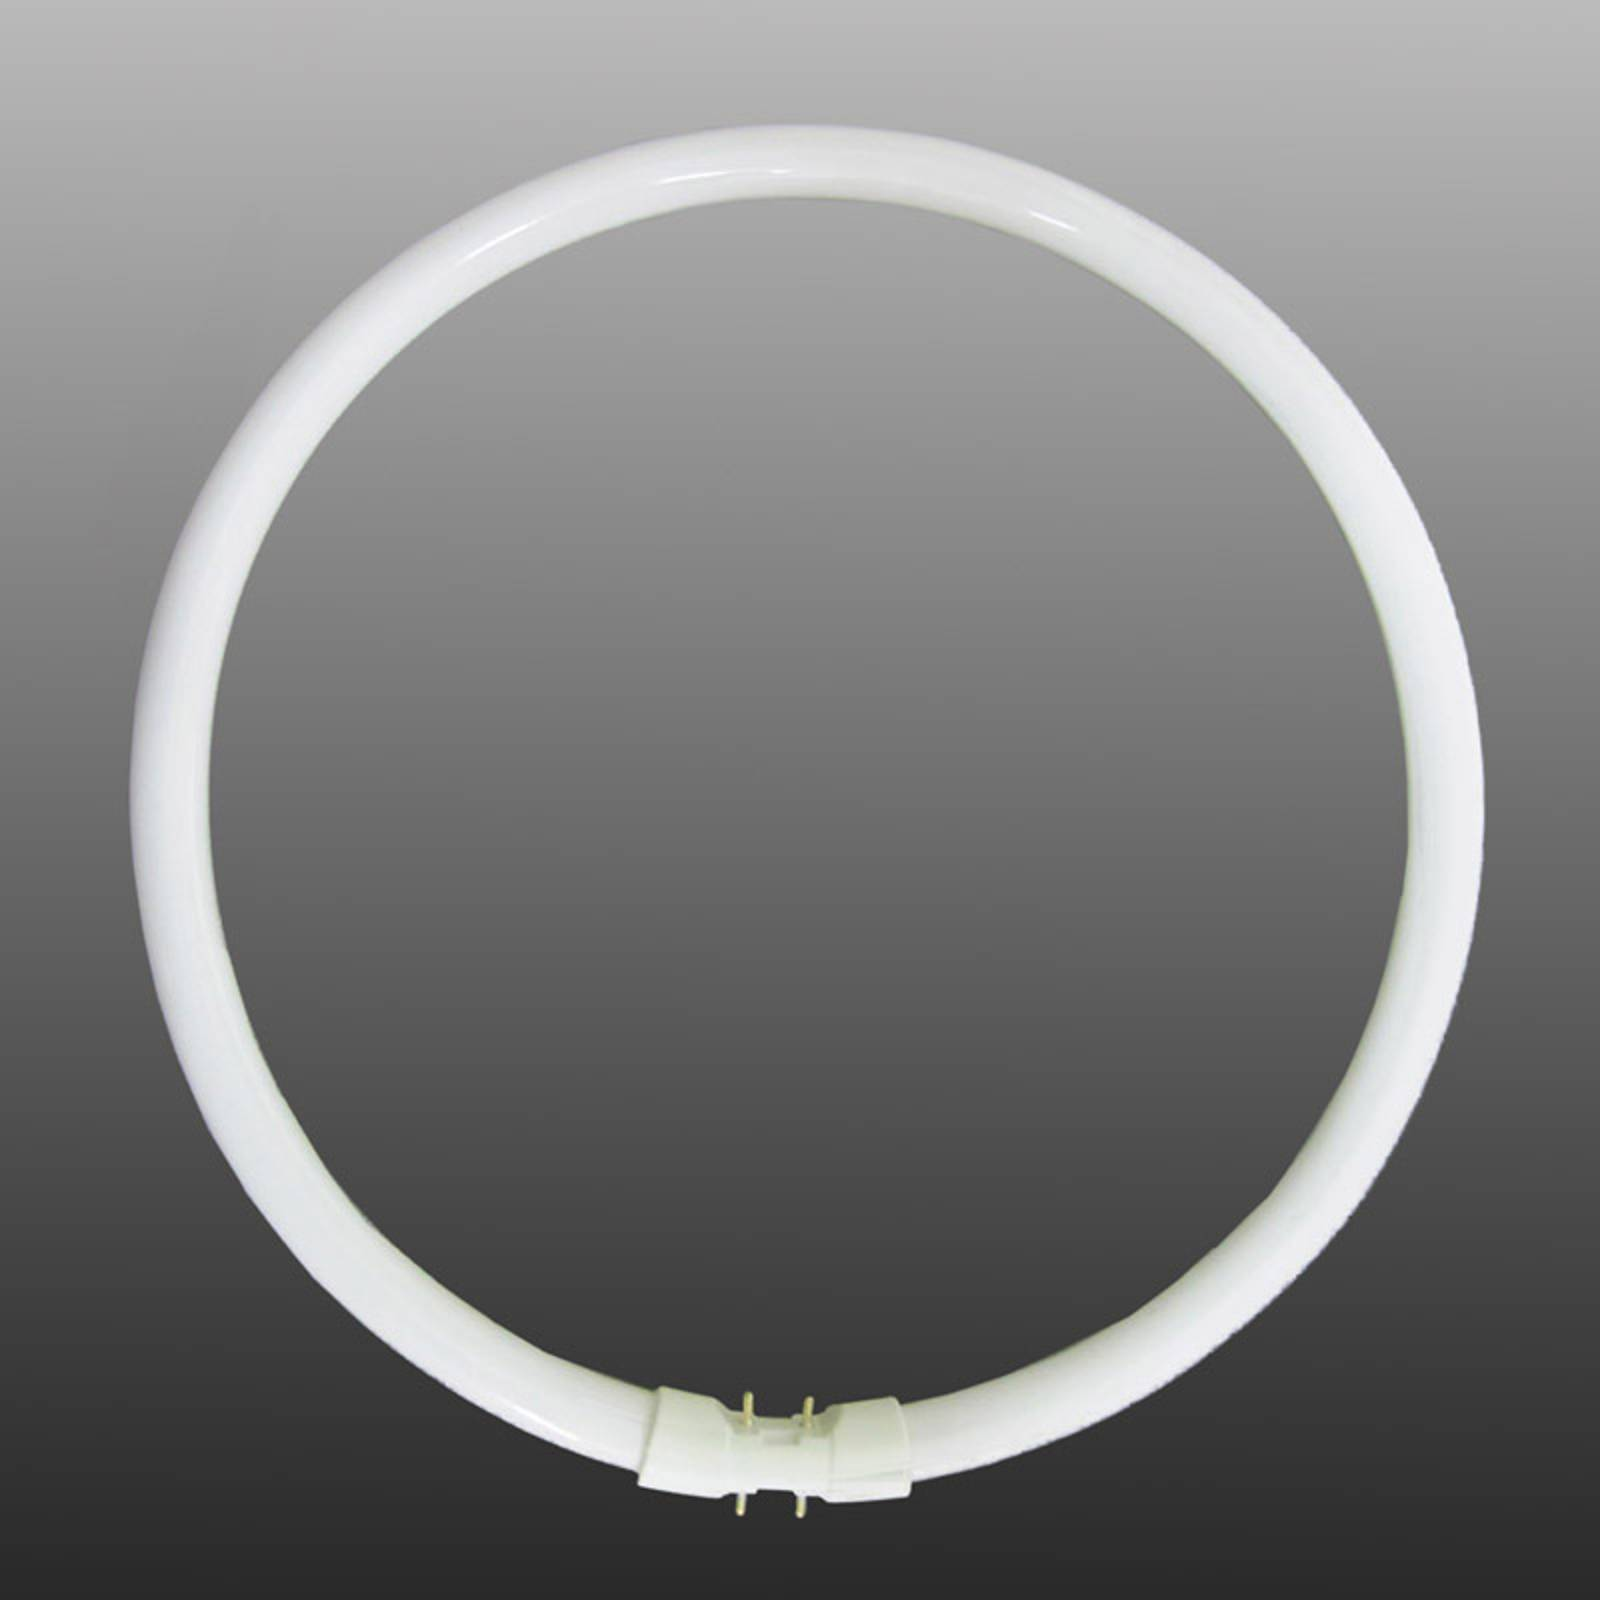 2GX13 T5 22 W fluorescent ring, cool white from Stylvania